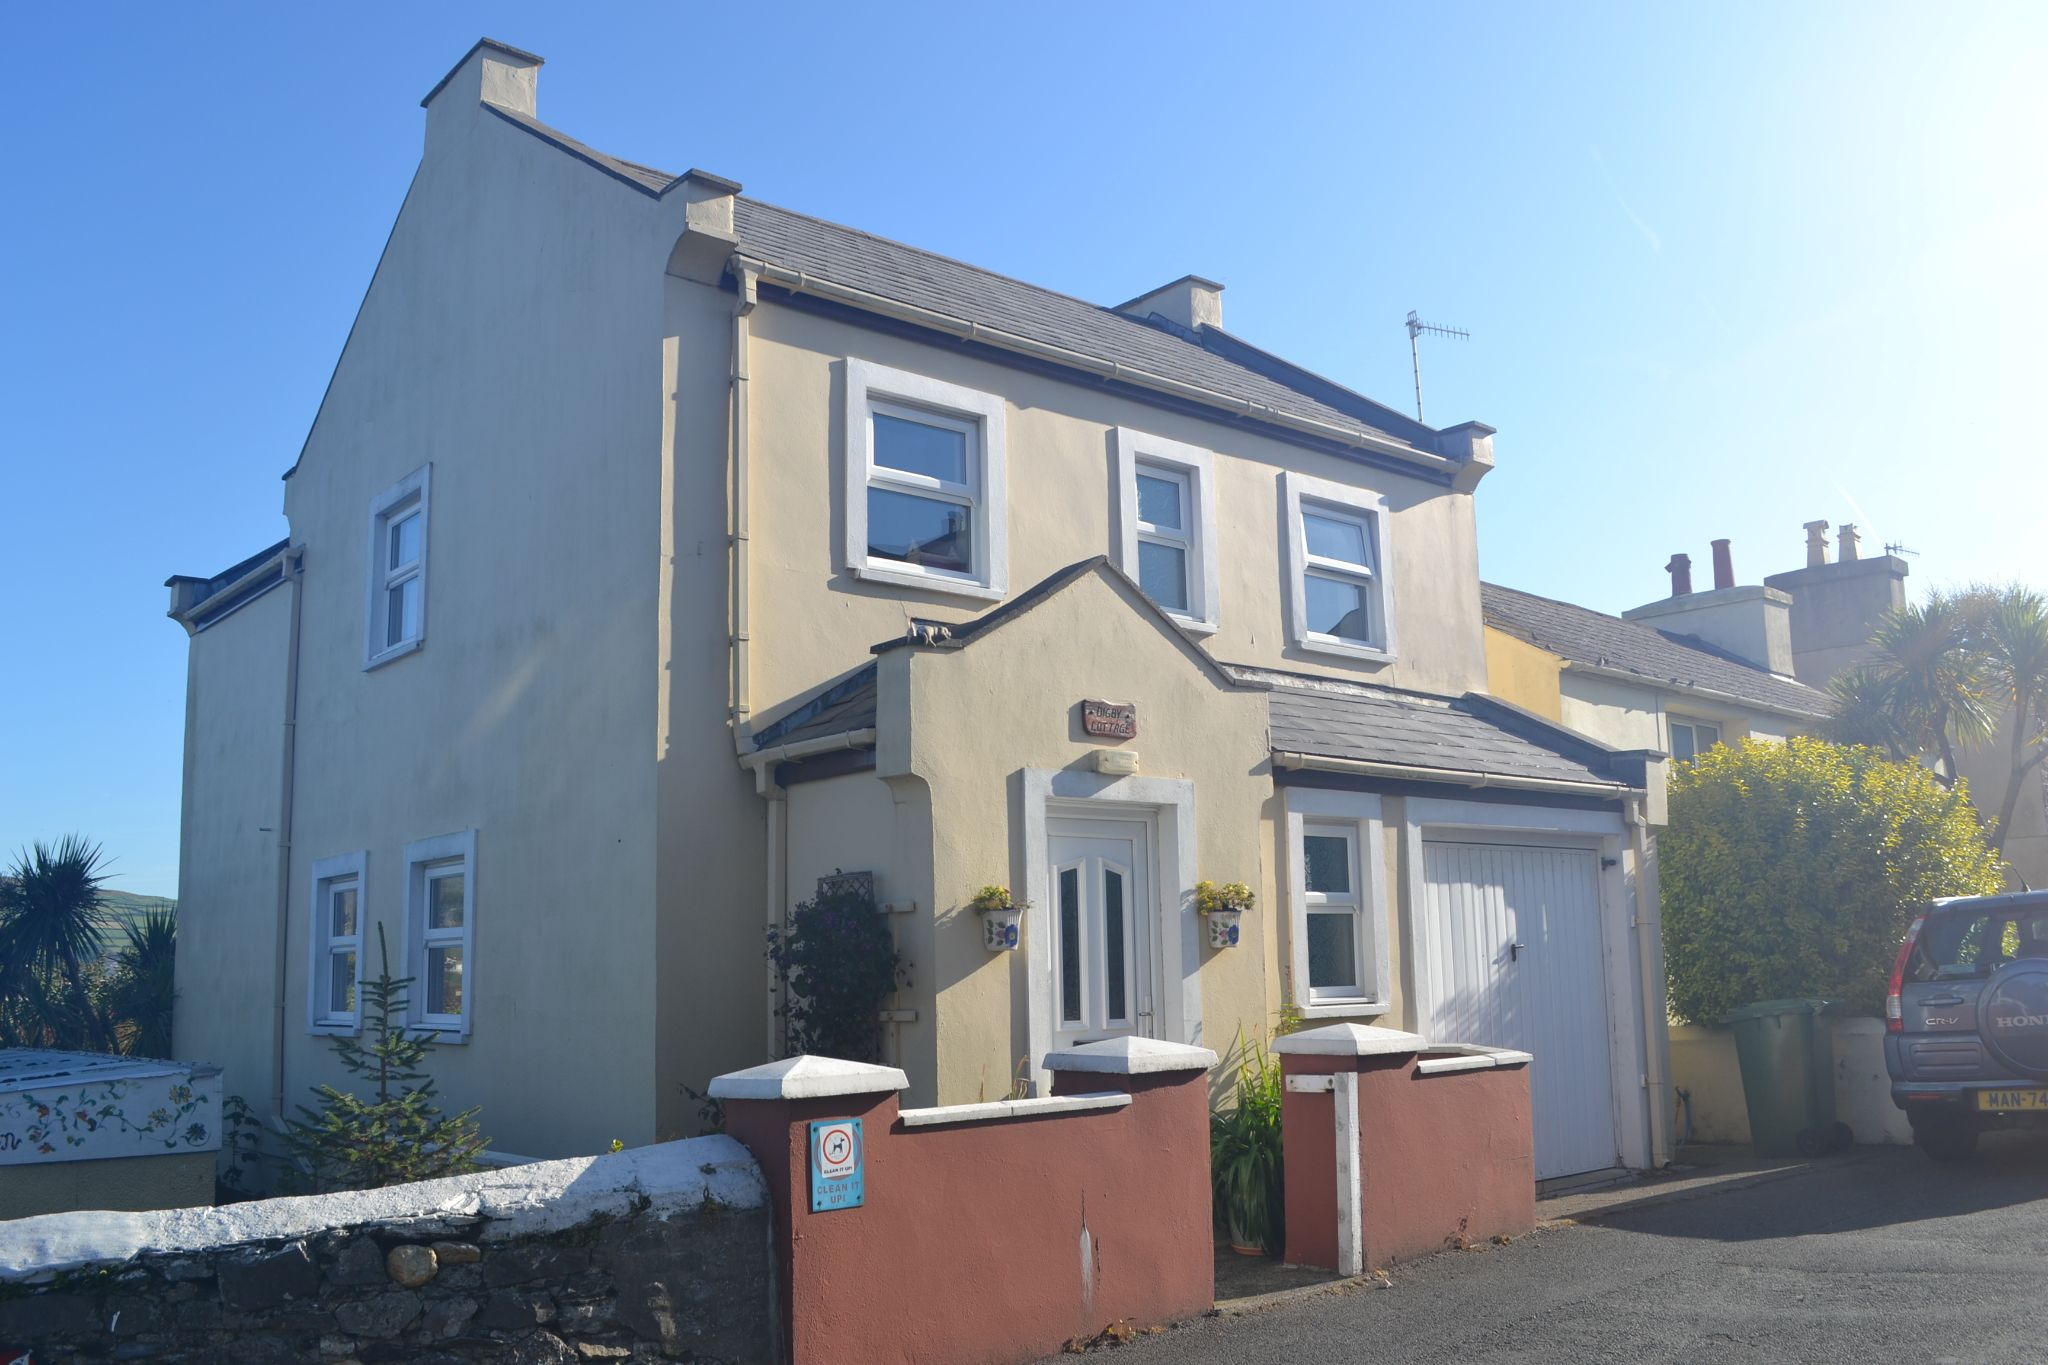 3 bedroom detached house For Sale in Port Erin - Photograph 1